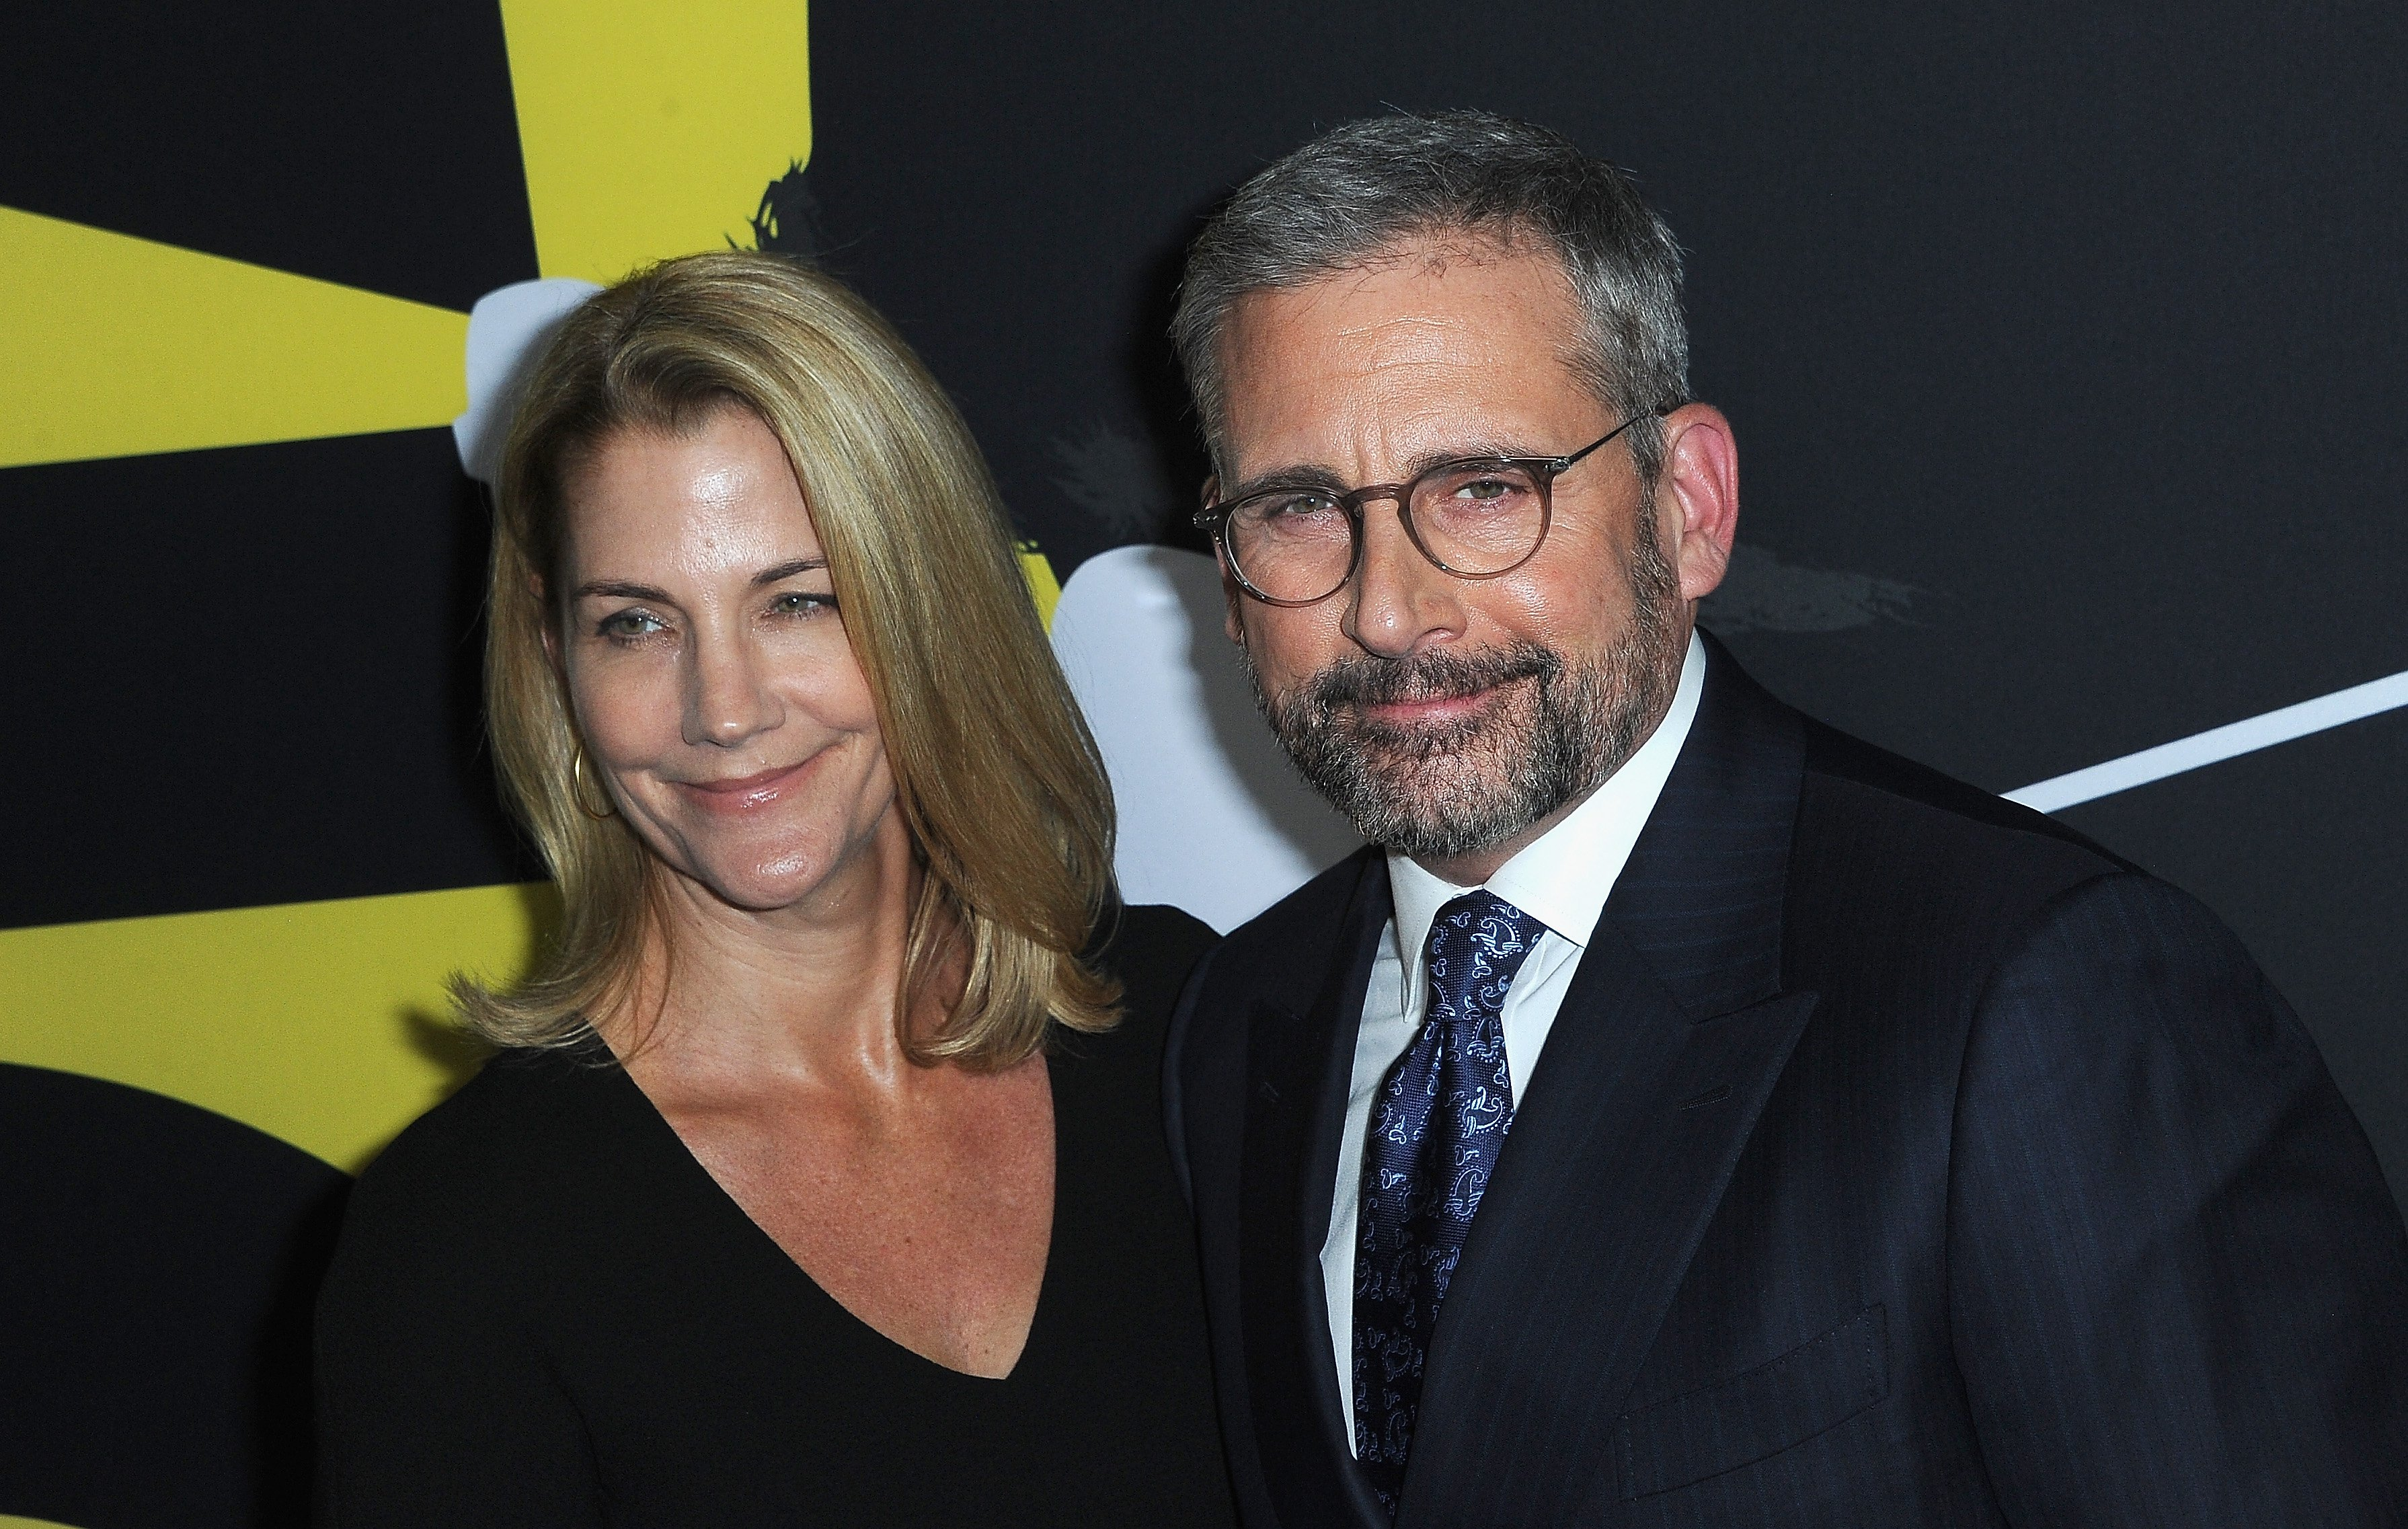 """Steve Carell and wife Nancy Carell at the World Premiere Of """"Vice"""" held at AMPAS Samuel Goldwyn Theater on December 11, 2018 in Beverly Hills, California 